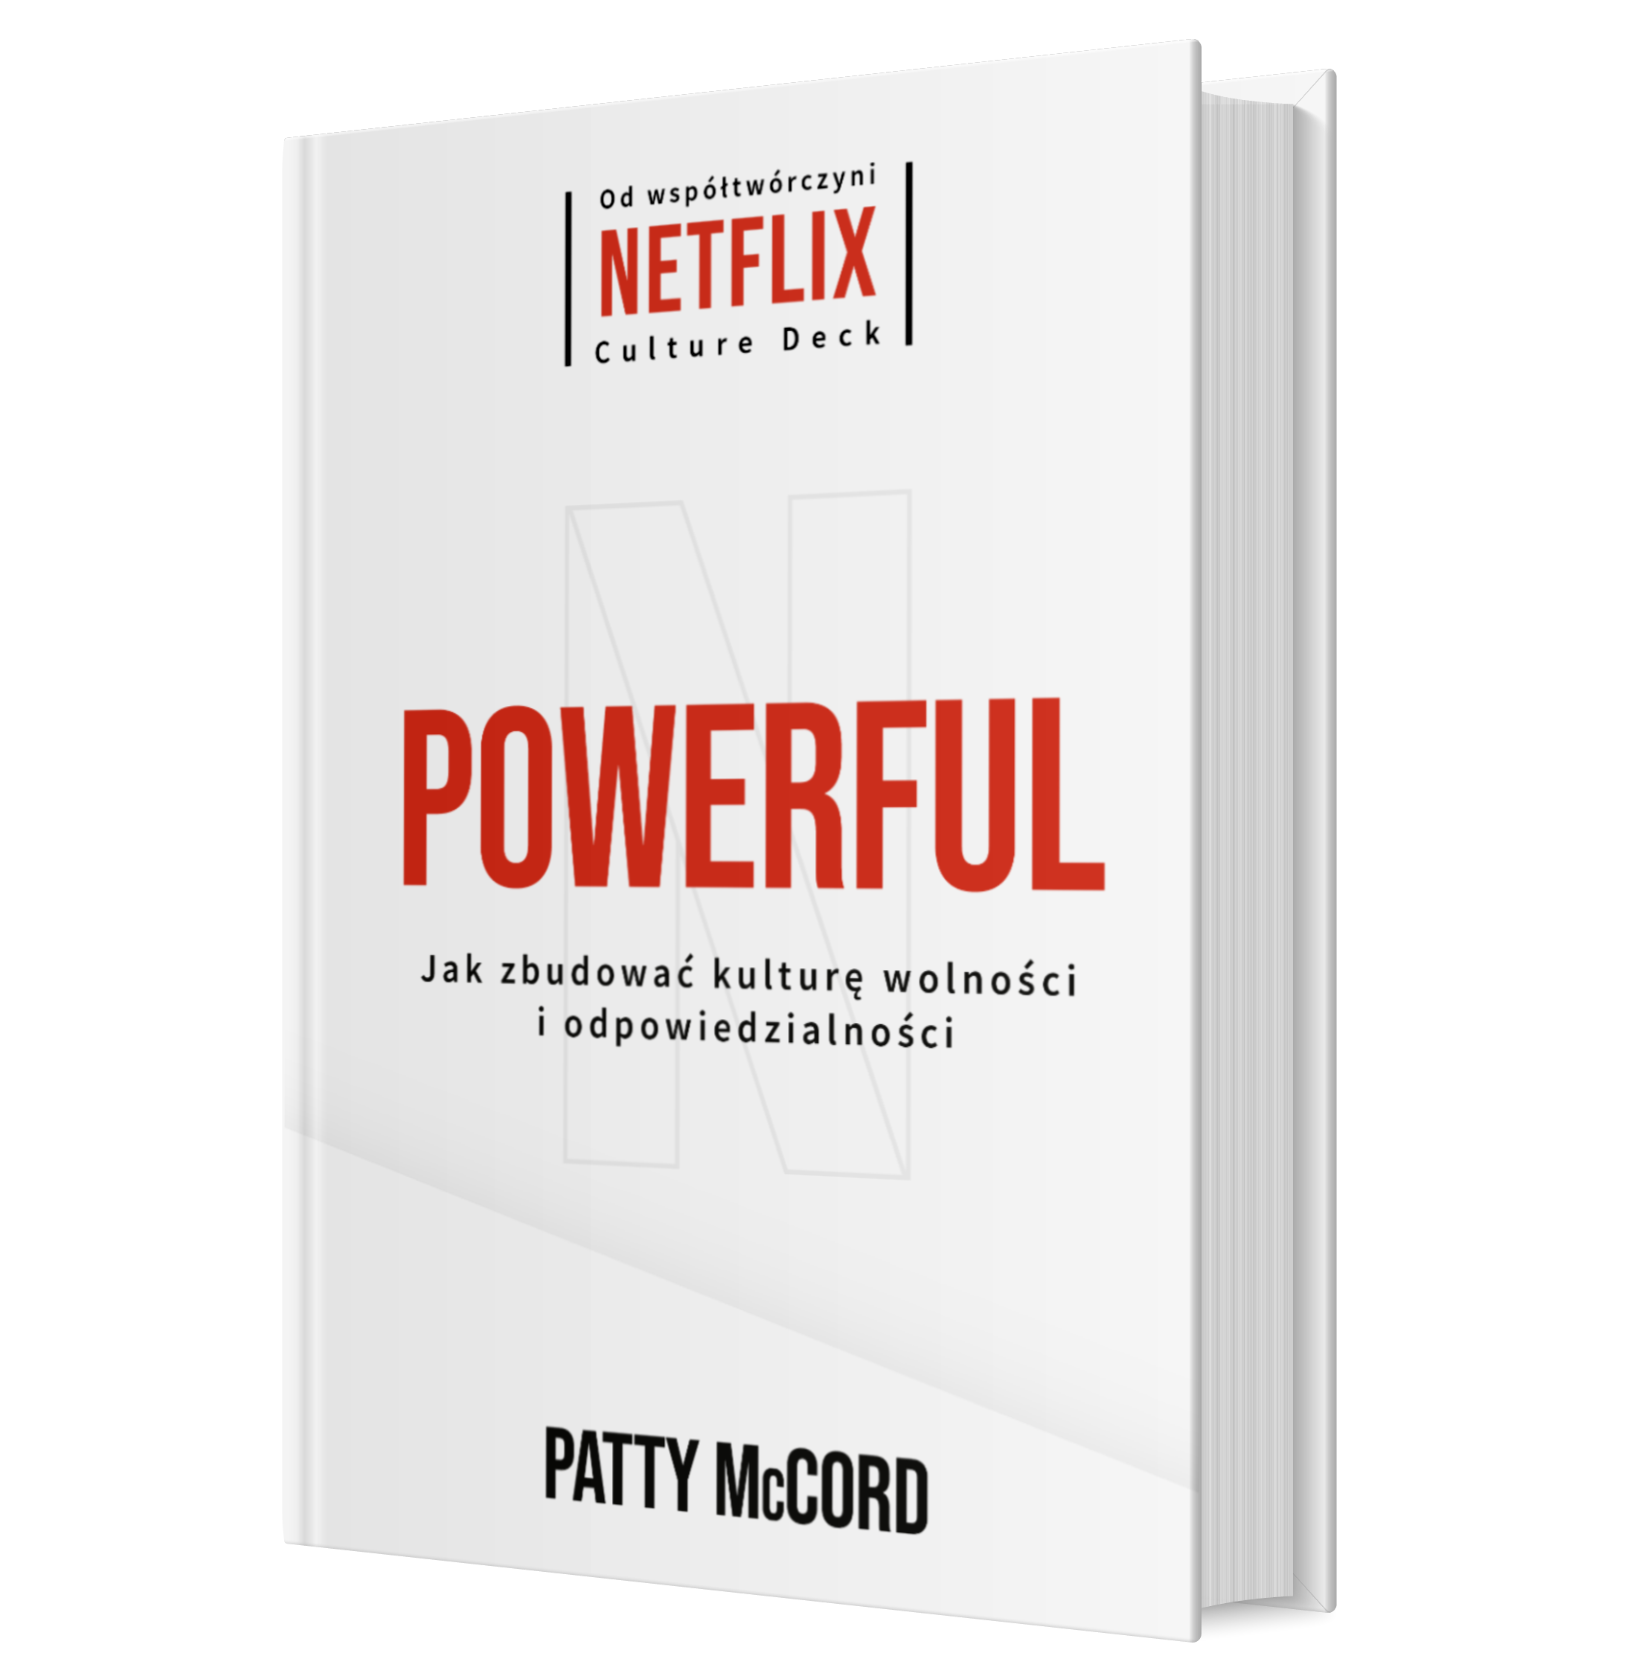 Powerful _ Patty McCord